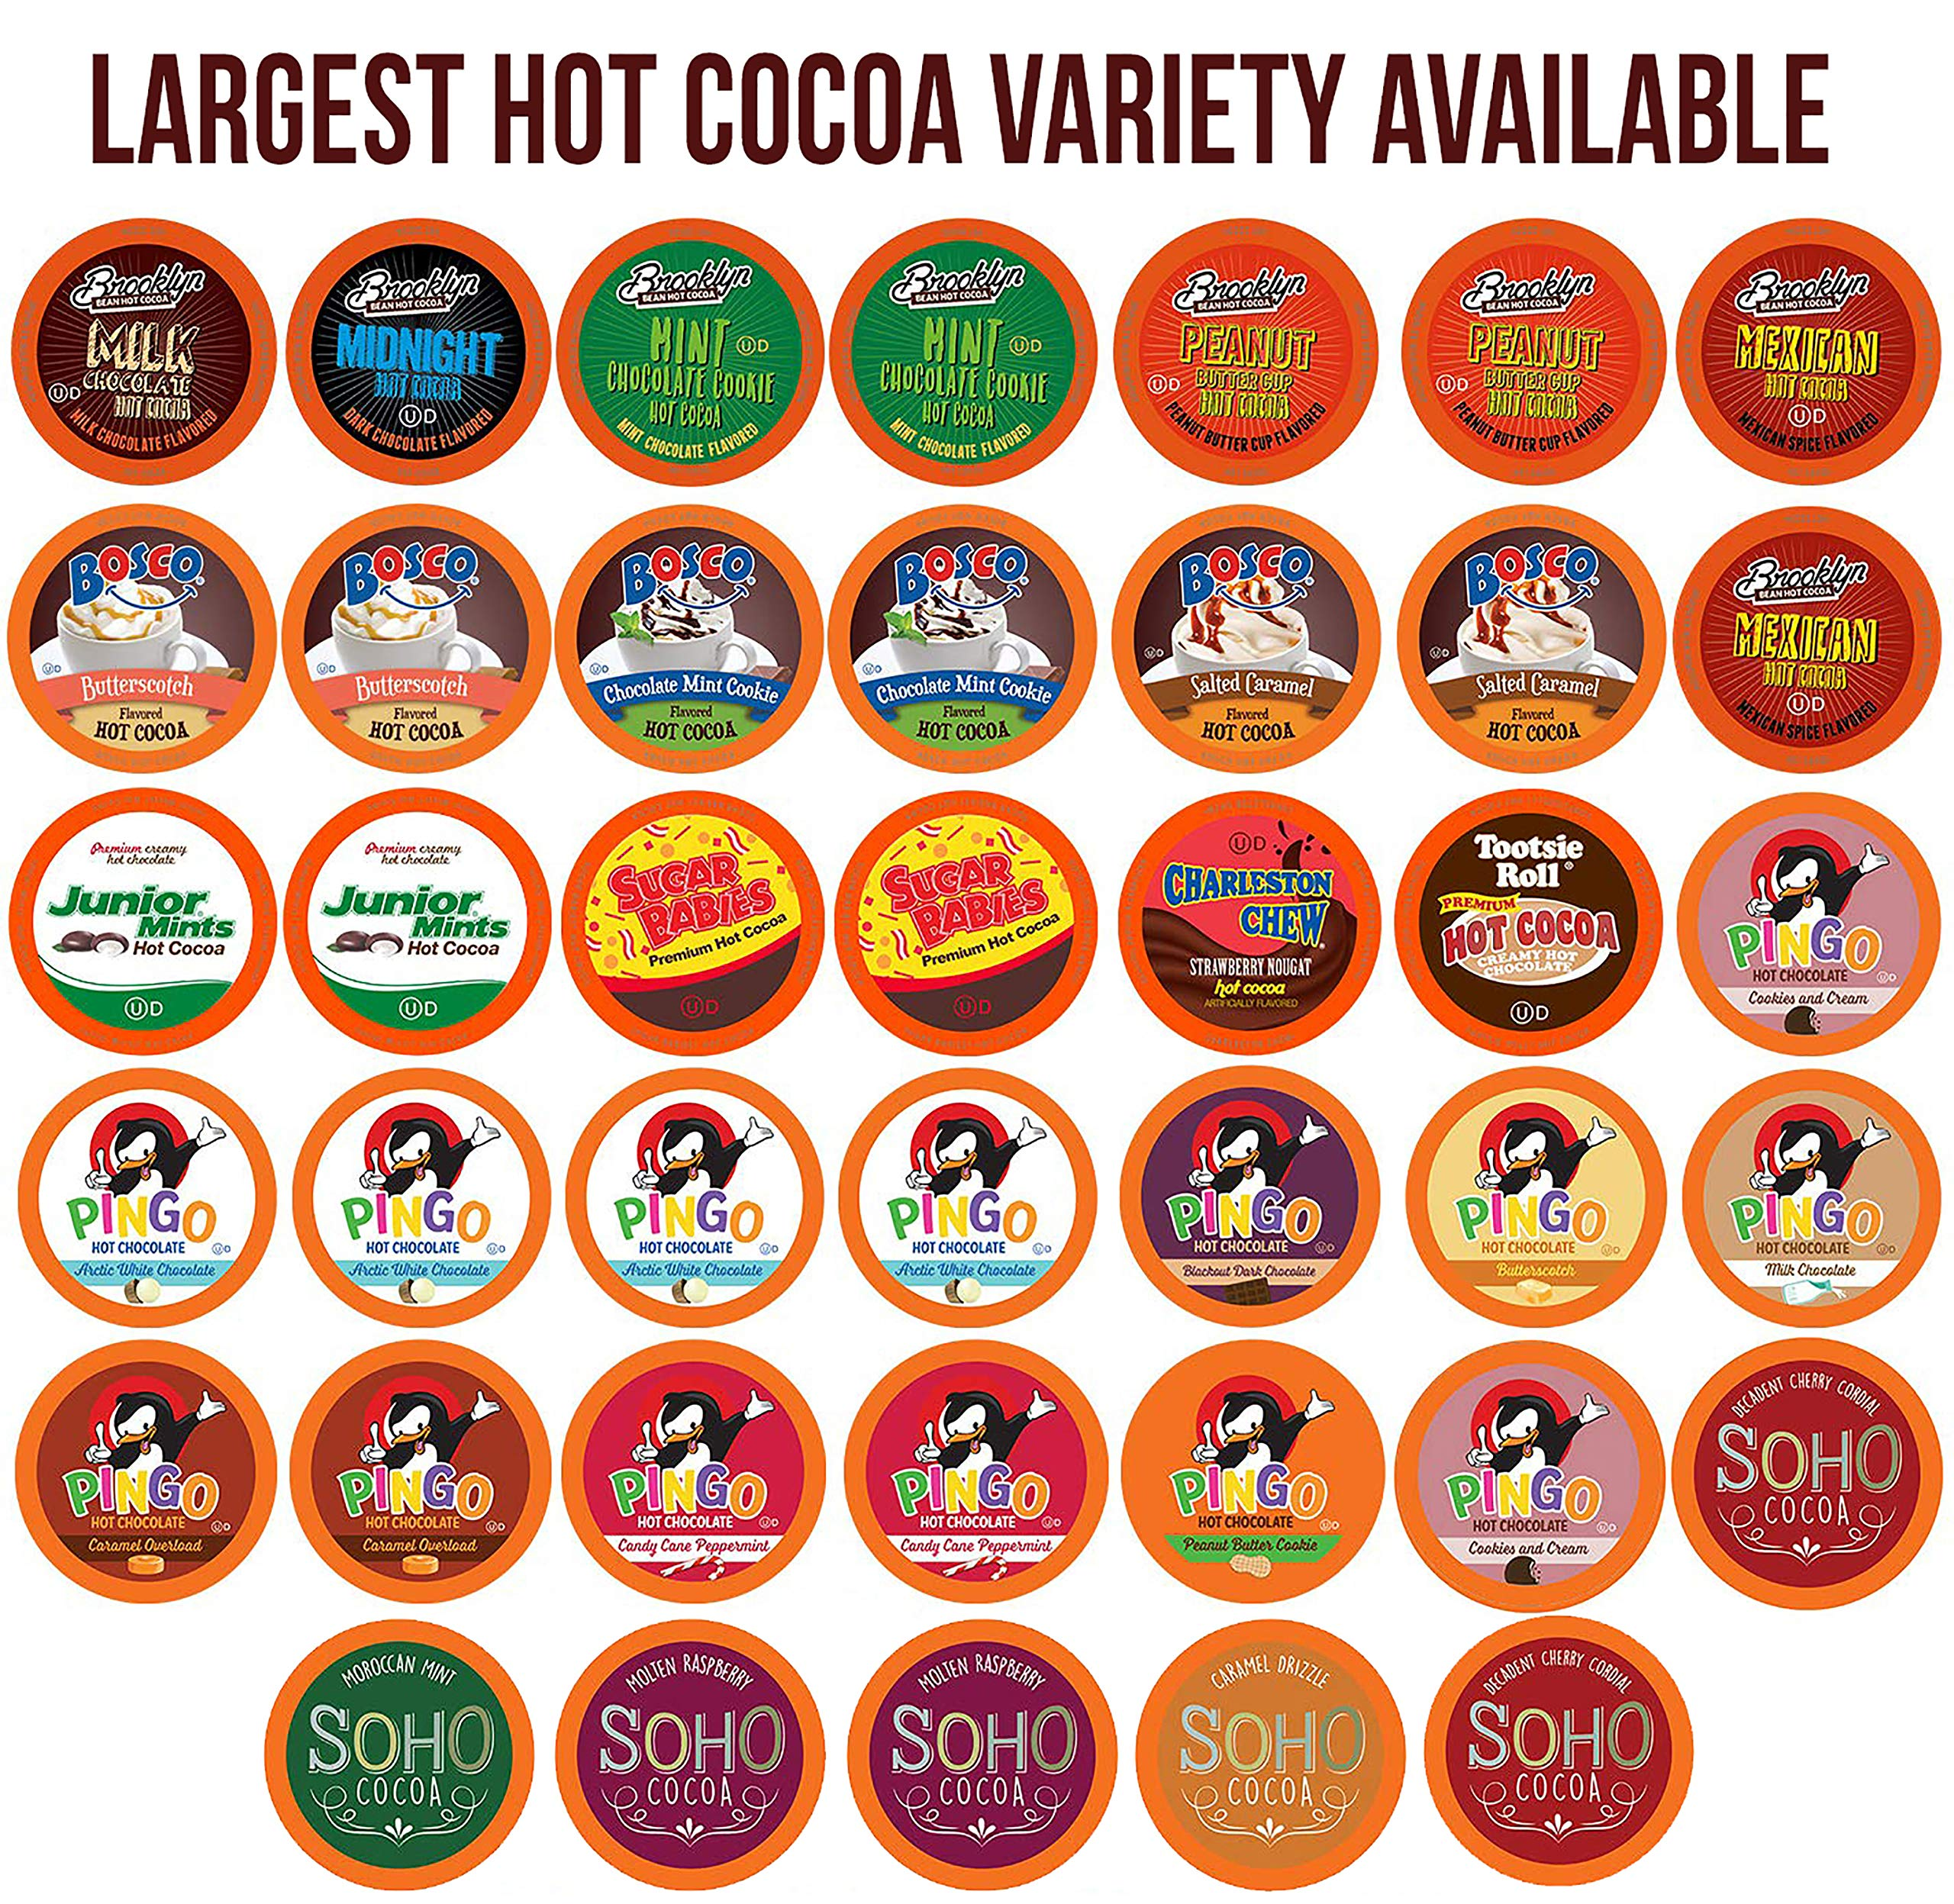 Two Rivers Chocolate Hot Cocoa Sampler Pack, Single-Cup for Keurig K-Cup Brewers, 40 Count by TWO RIVERS